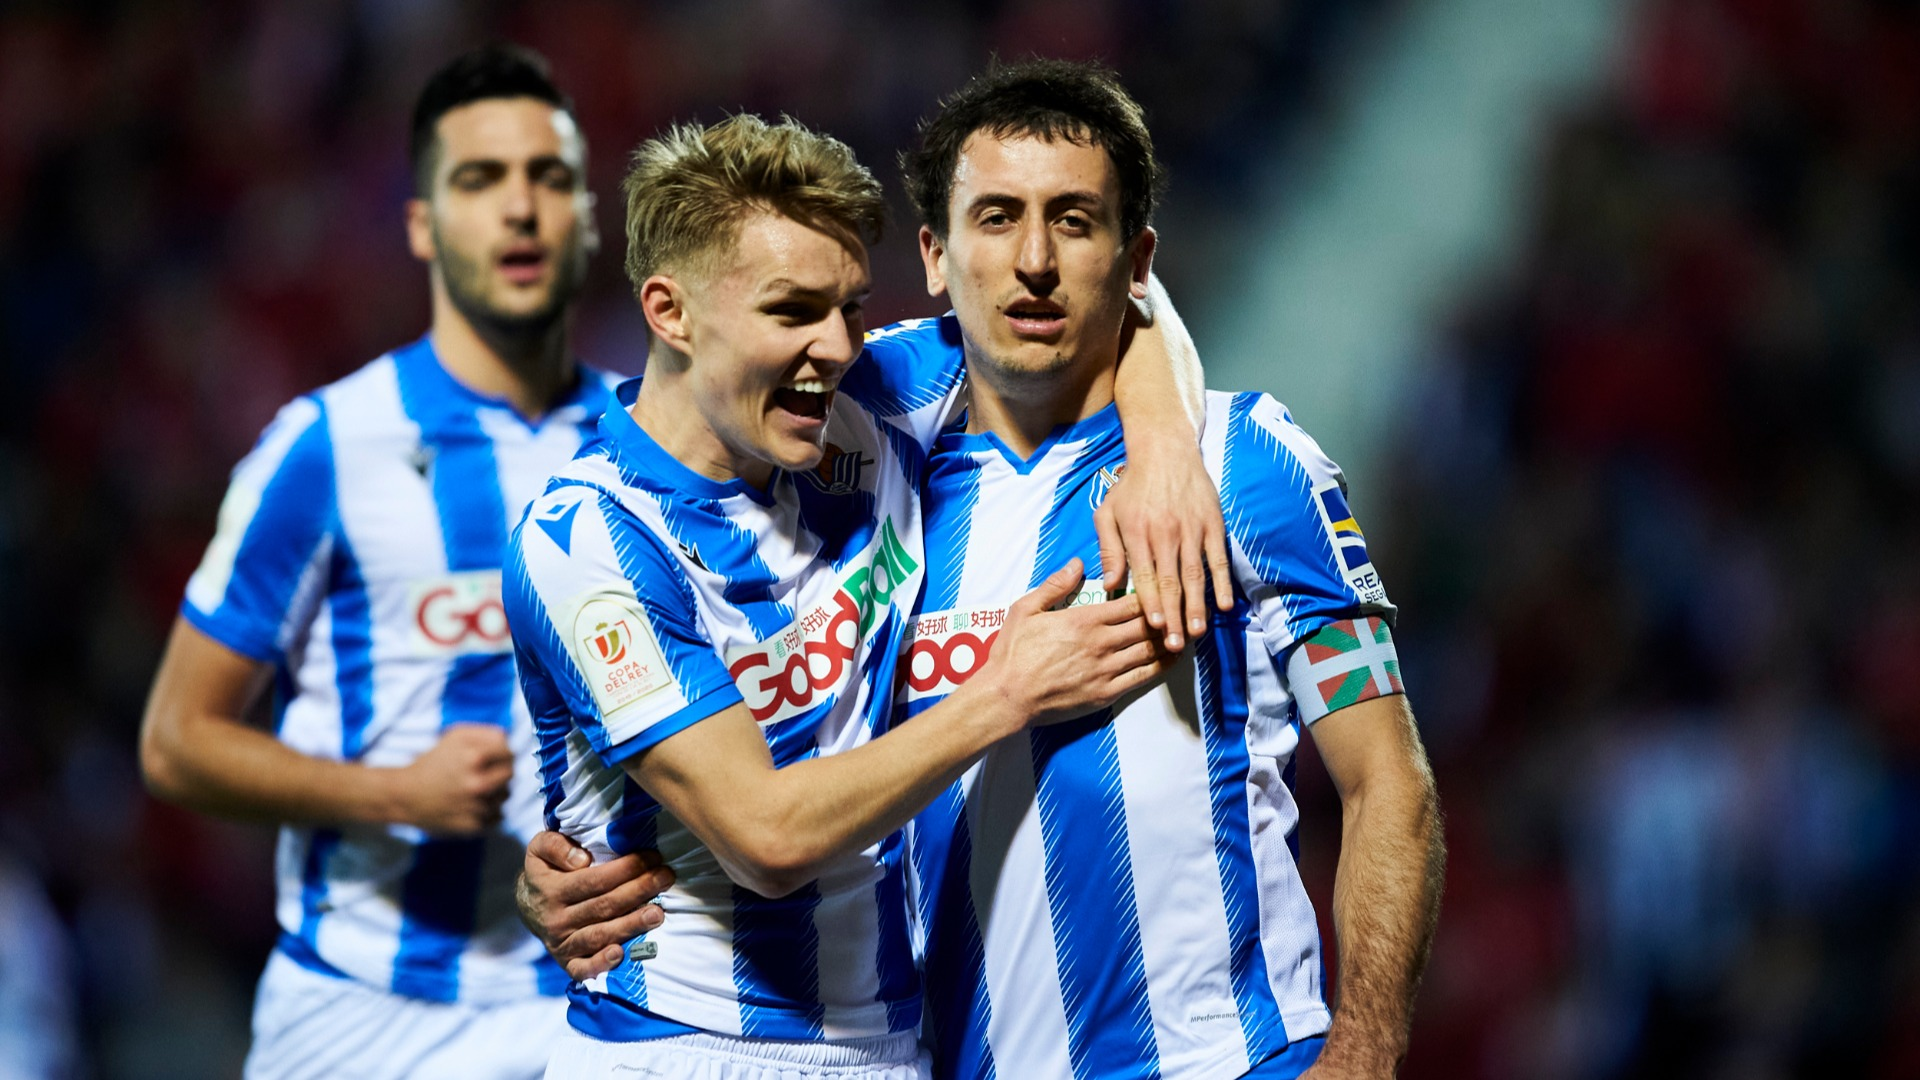 Mirandes 0-1 Real Sociedad (1-3 agg): Sixth straight win ends 32-year wait for Copa final